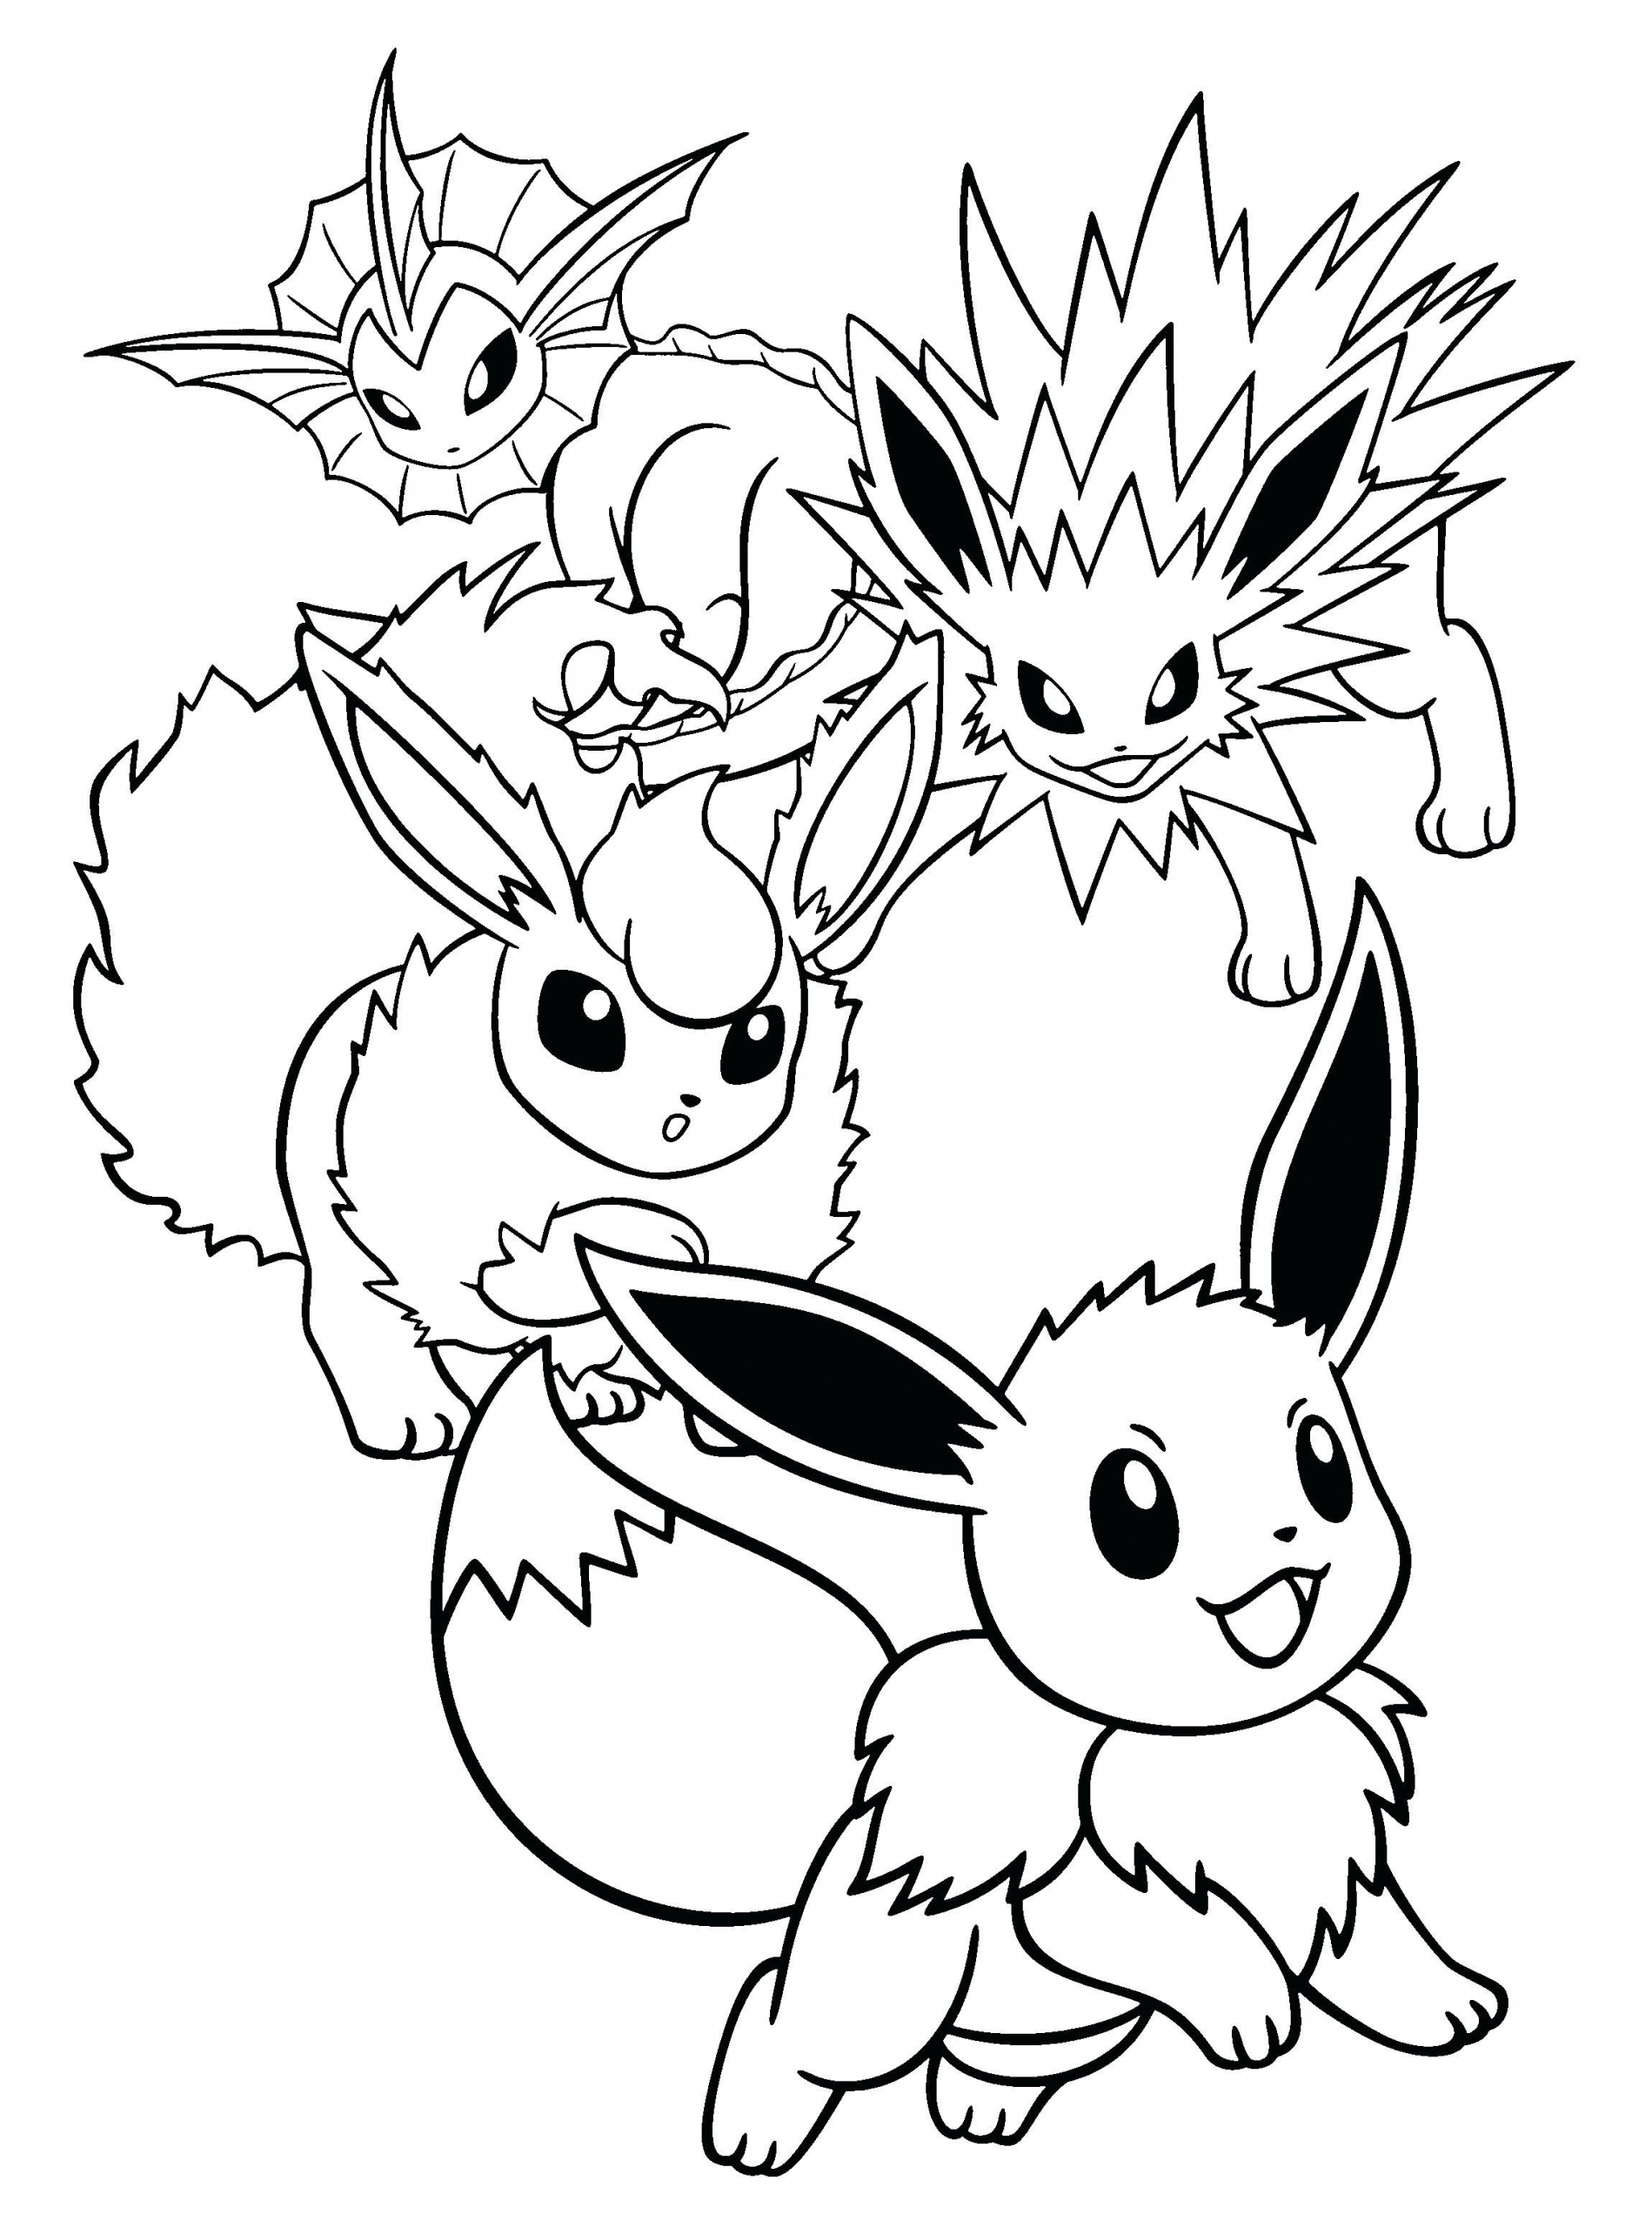 Pokemon Eevee Coloring Page Youngandtae Com In 2020 Pikachu Coloring Page Pokemon Coloring Pokemon Coloring Pages